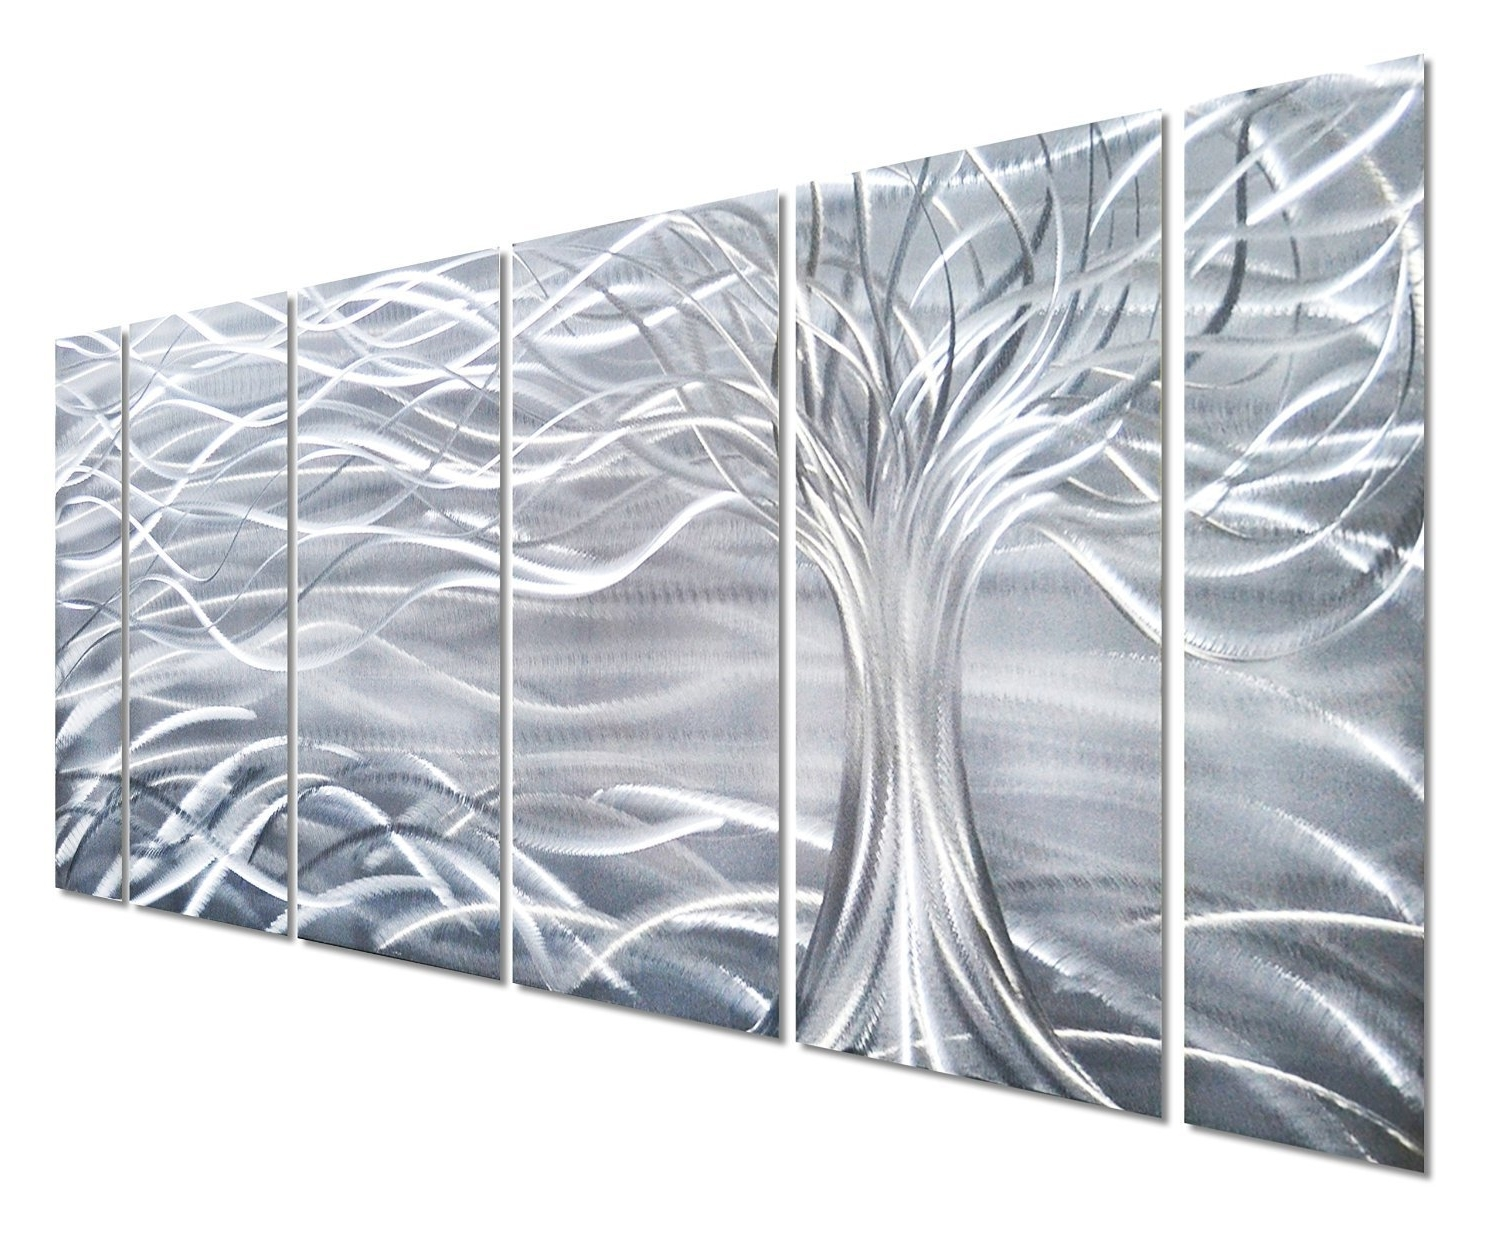 Most Recent Aluminum Abstract Wall Art Inside Amazon: Pure Art Willow Tree Of Life Metal Wall Art, Abstract (View 4 of 15)